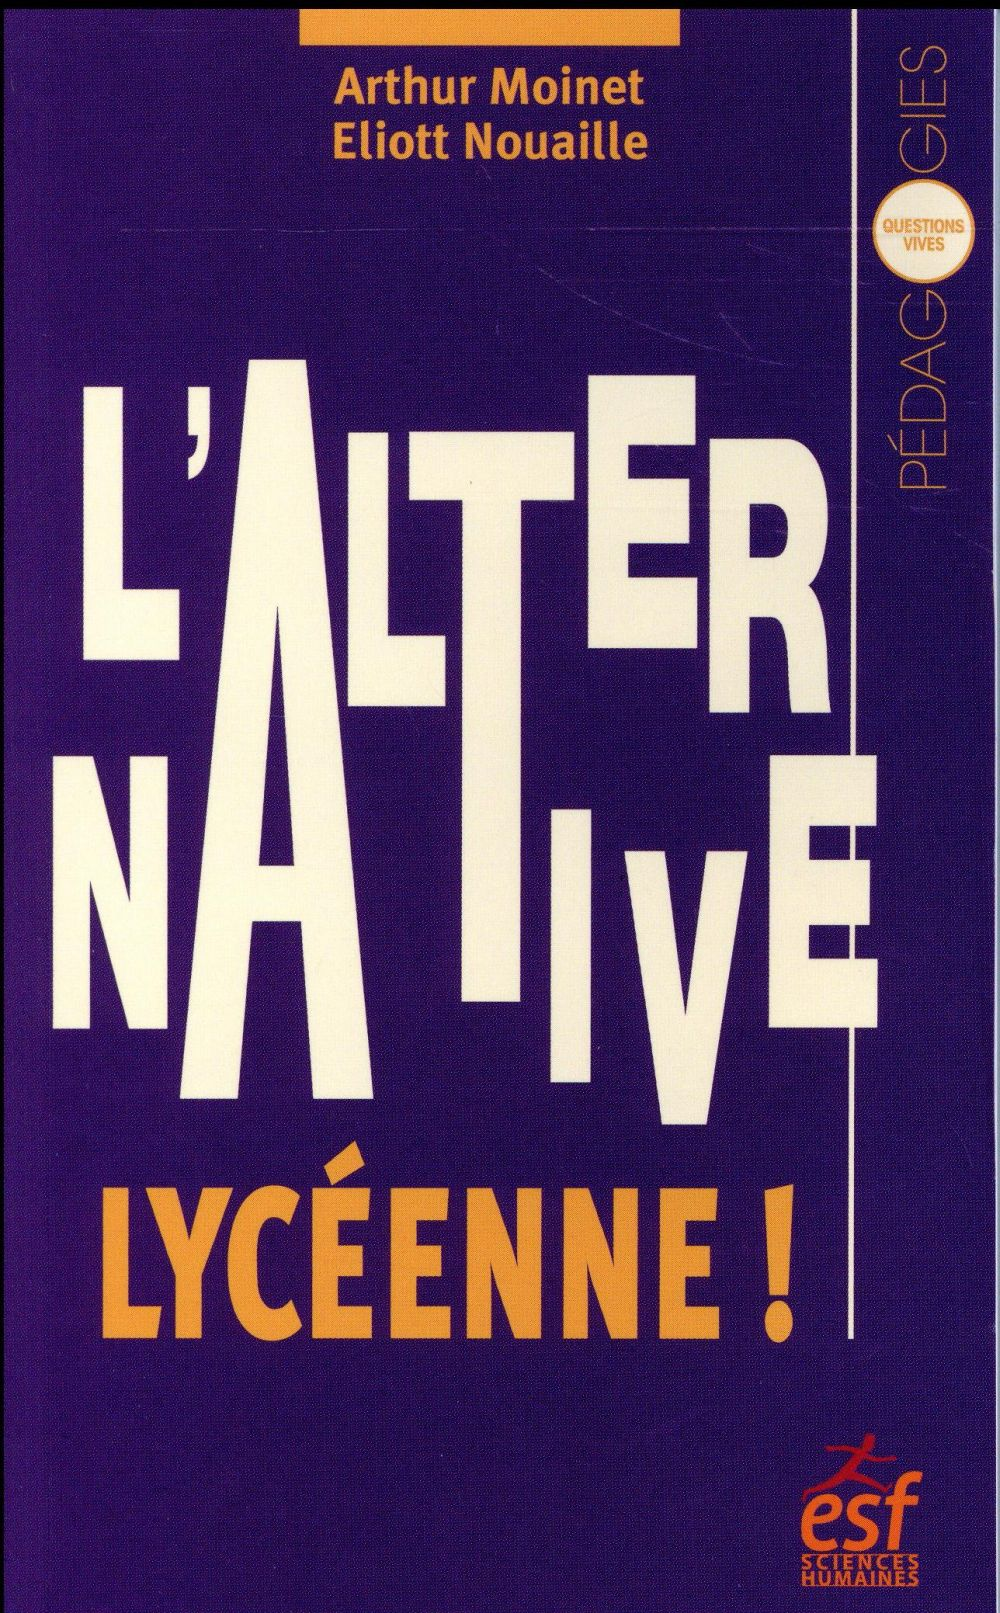 L'ALTERNATIVE LYCEENNE !